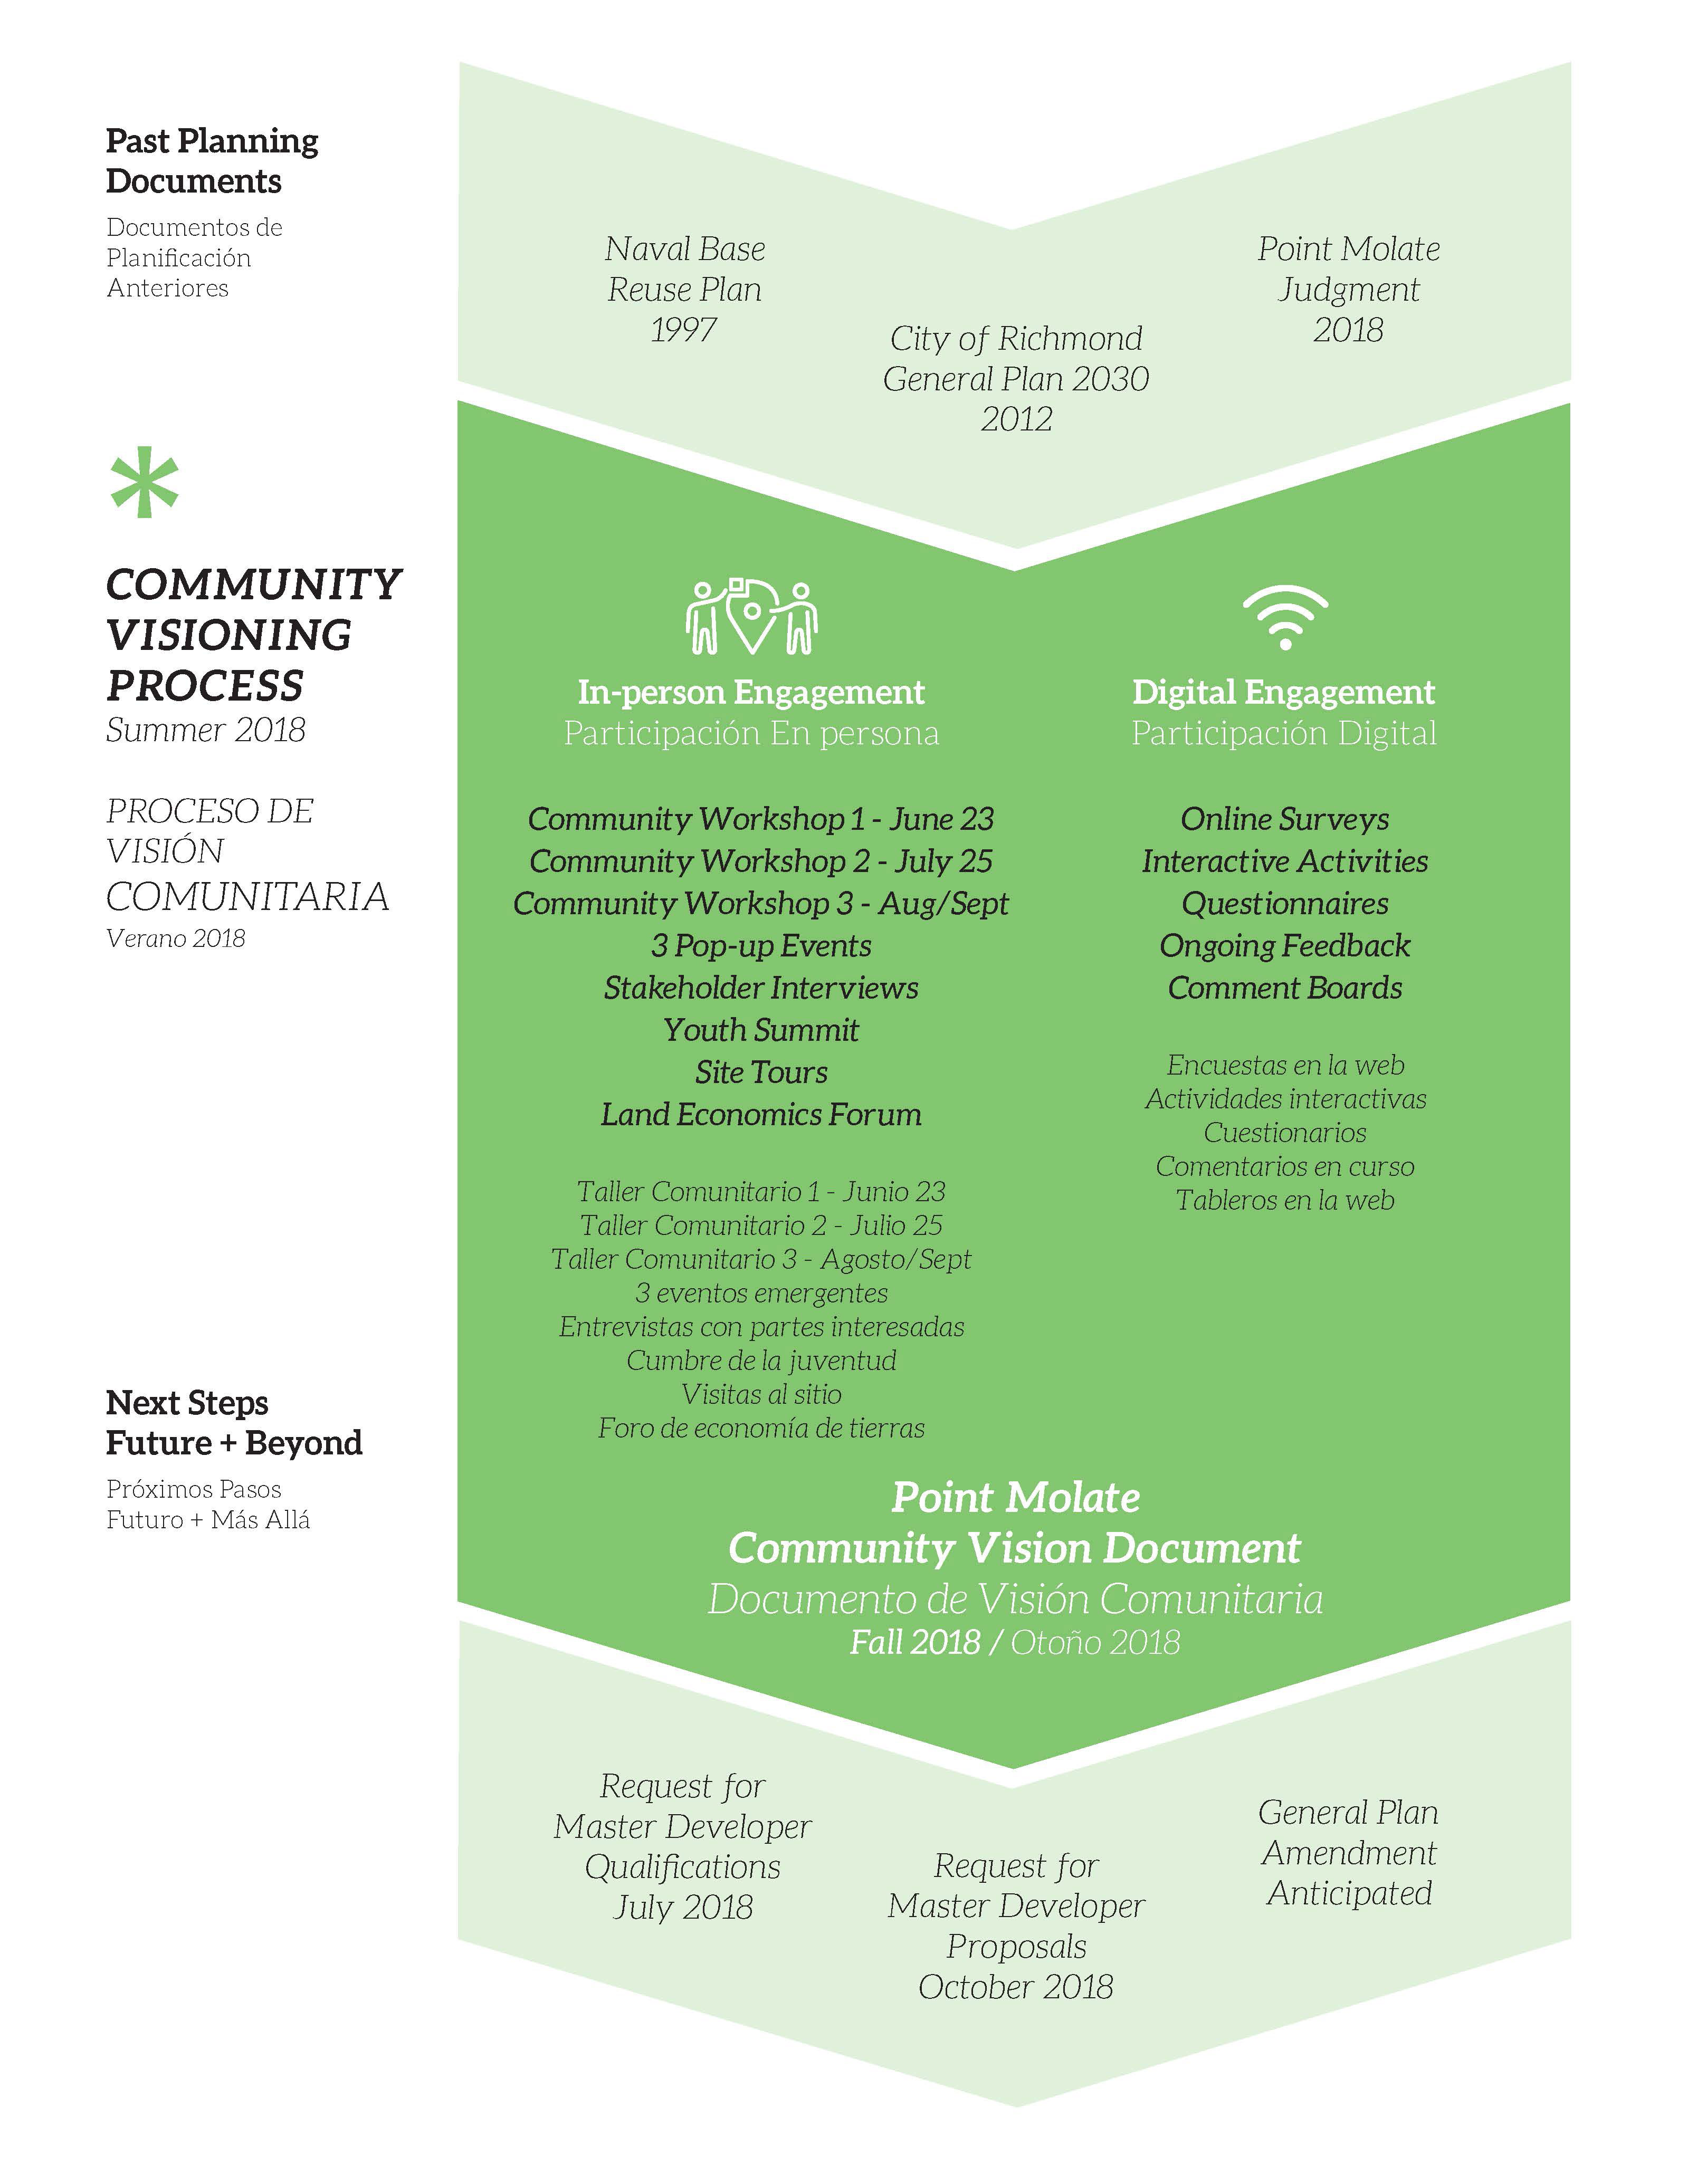 Project Overview | Point Molate Community Visioning